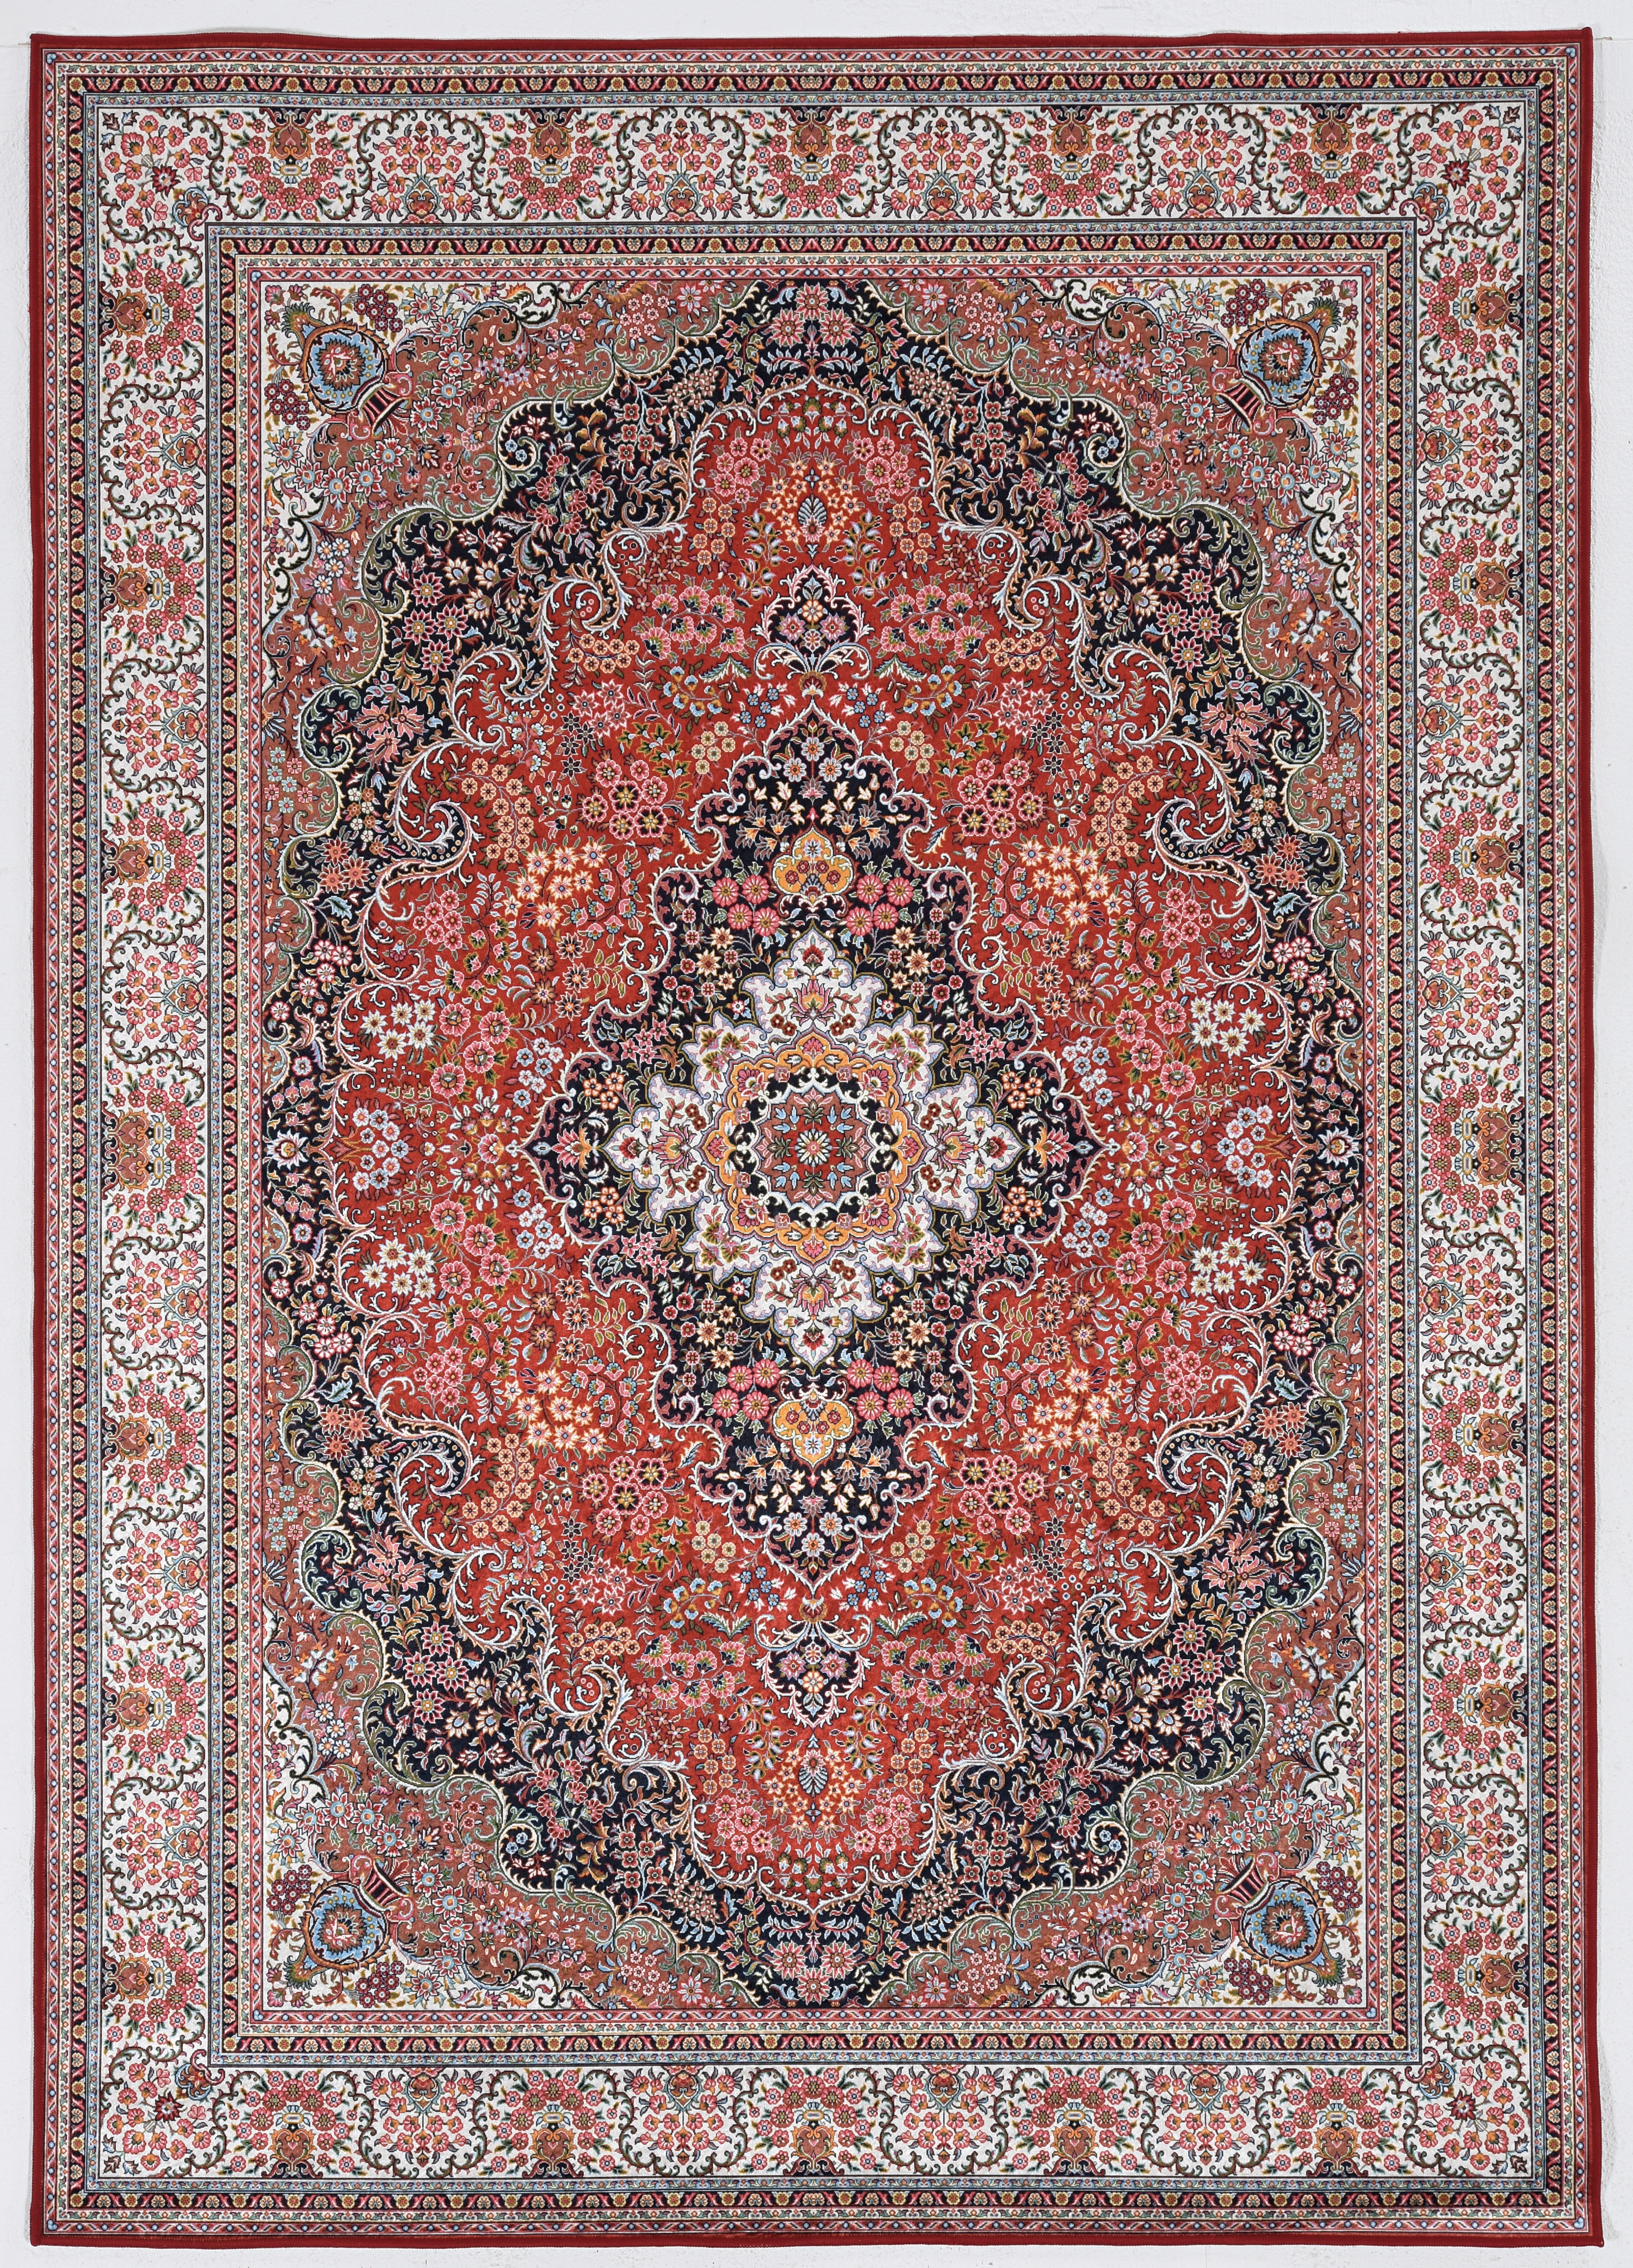 Orange Red Area Rugs You Ll Love In 2021 Wayfair